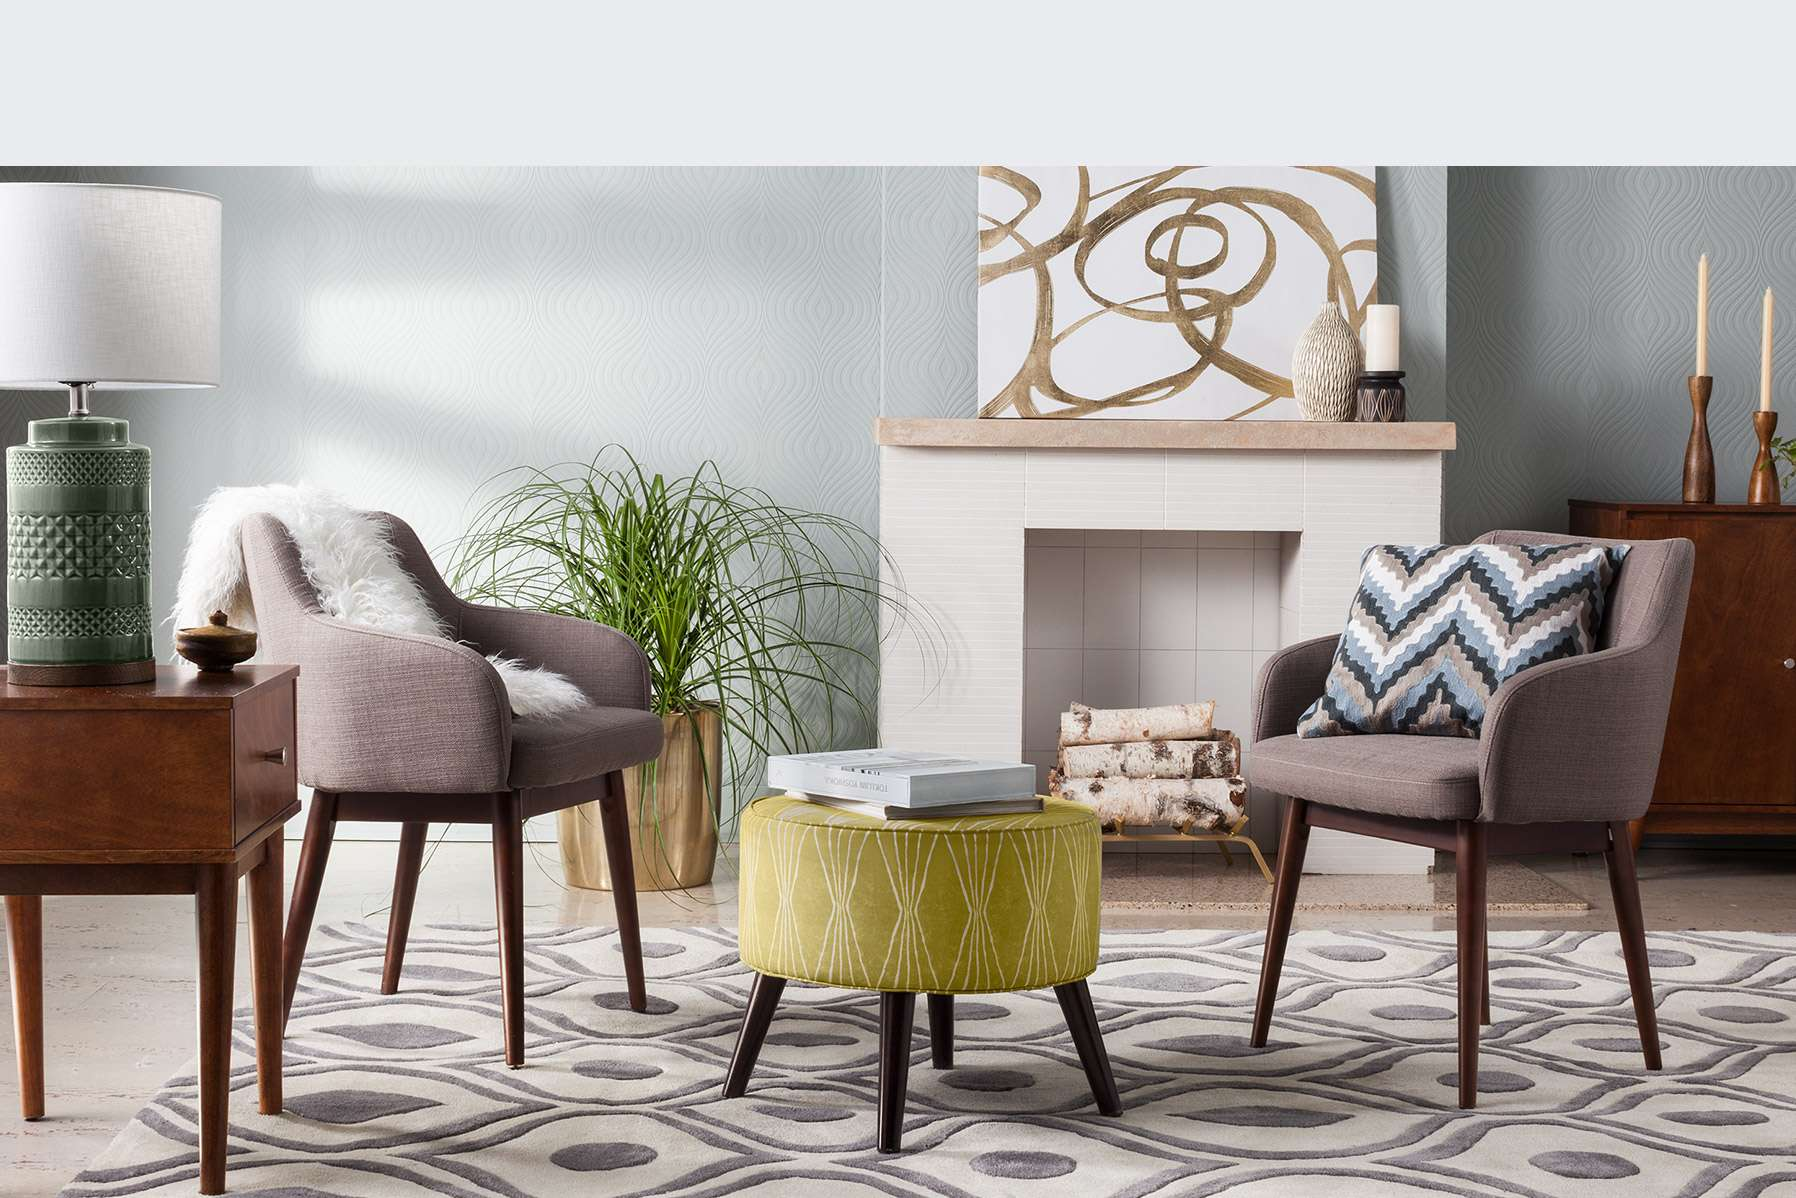 Foremost midcentury modern decor target for Modern style decor